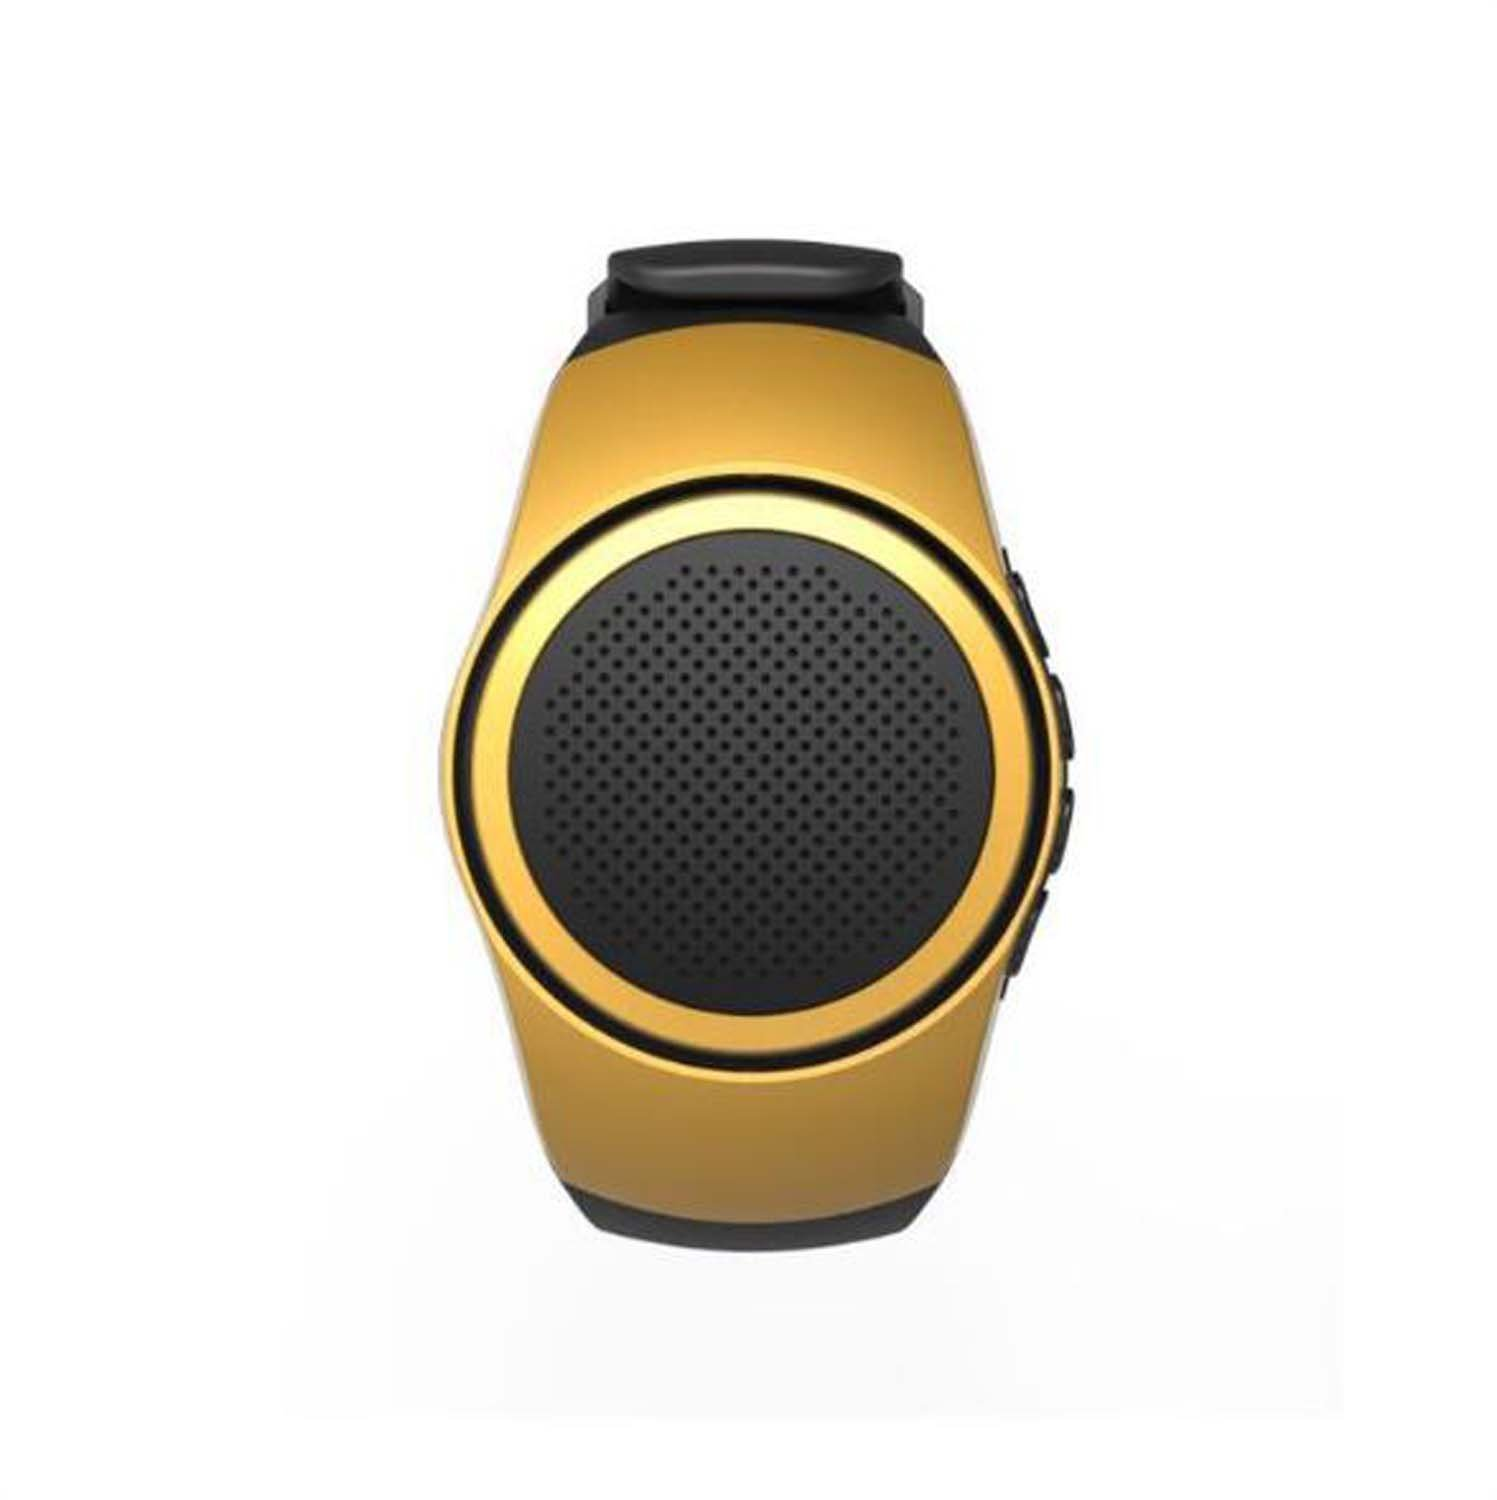 Hzhy Bluetooth Speaker Watch Sports Audio With Radio Can Answer The Phone Card Bluetooth Speaker Gift Outdoor (Color : Local gold)